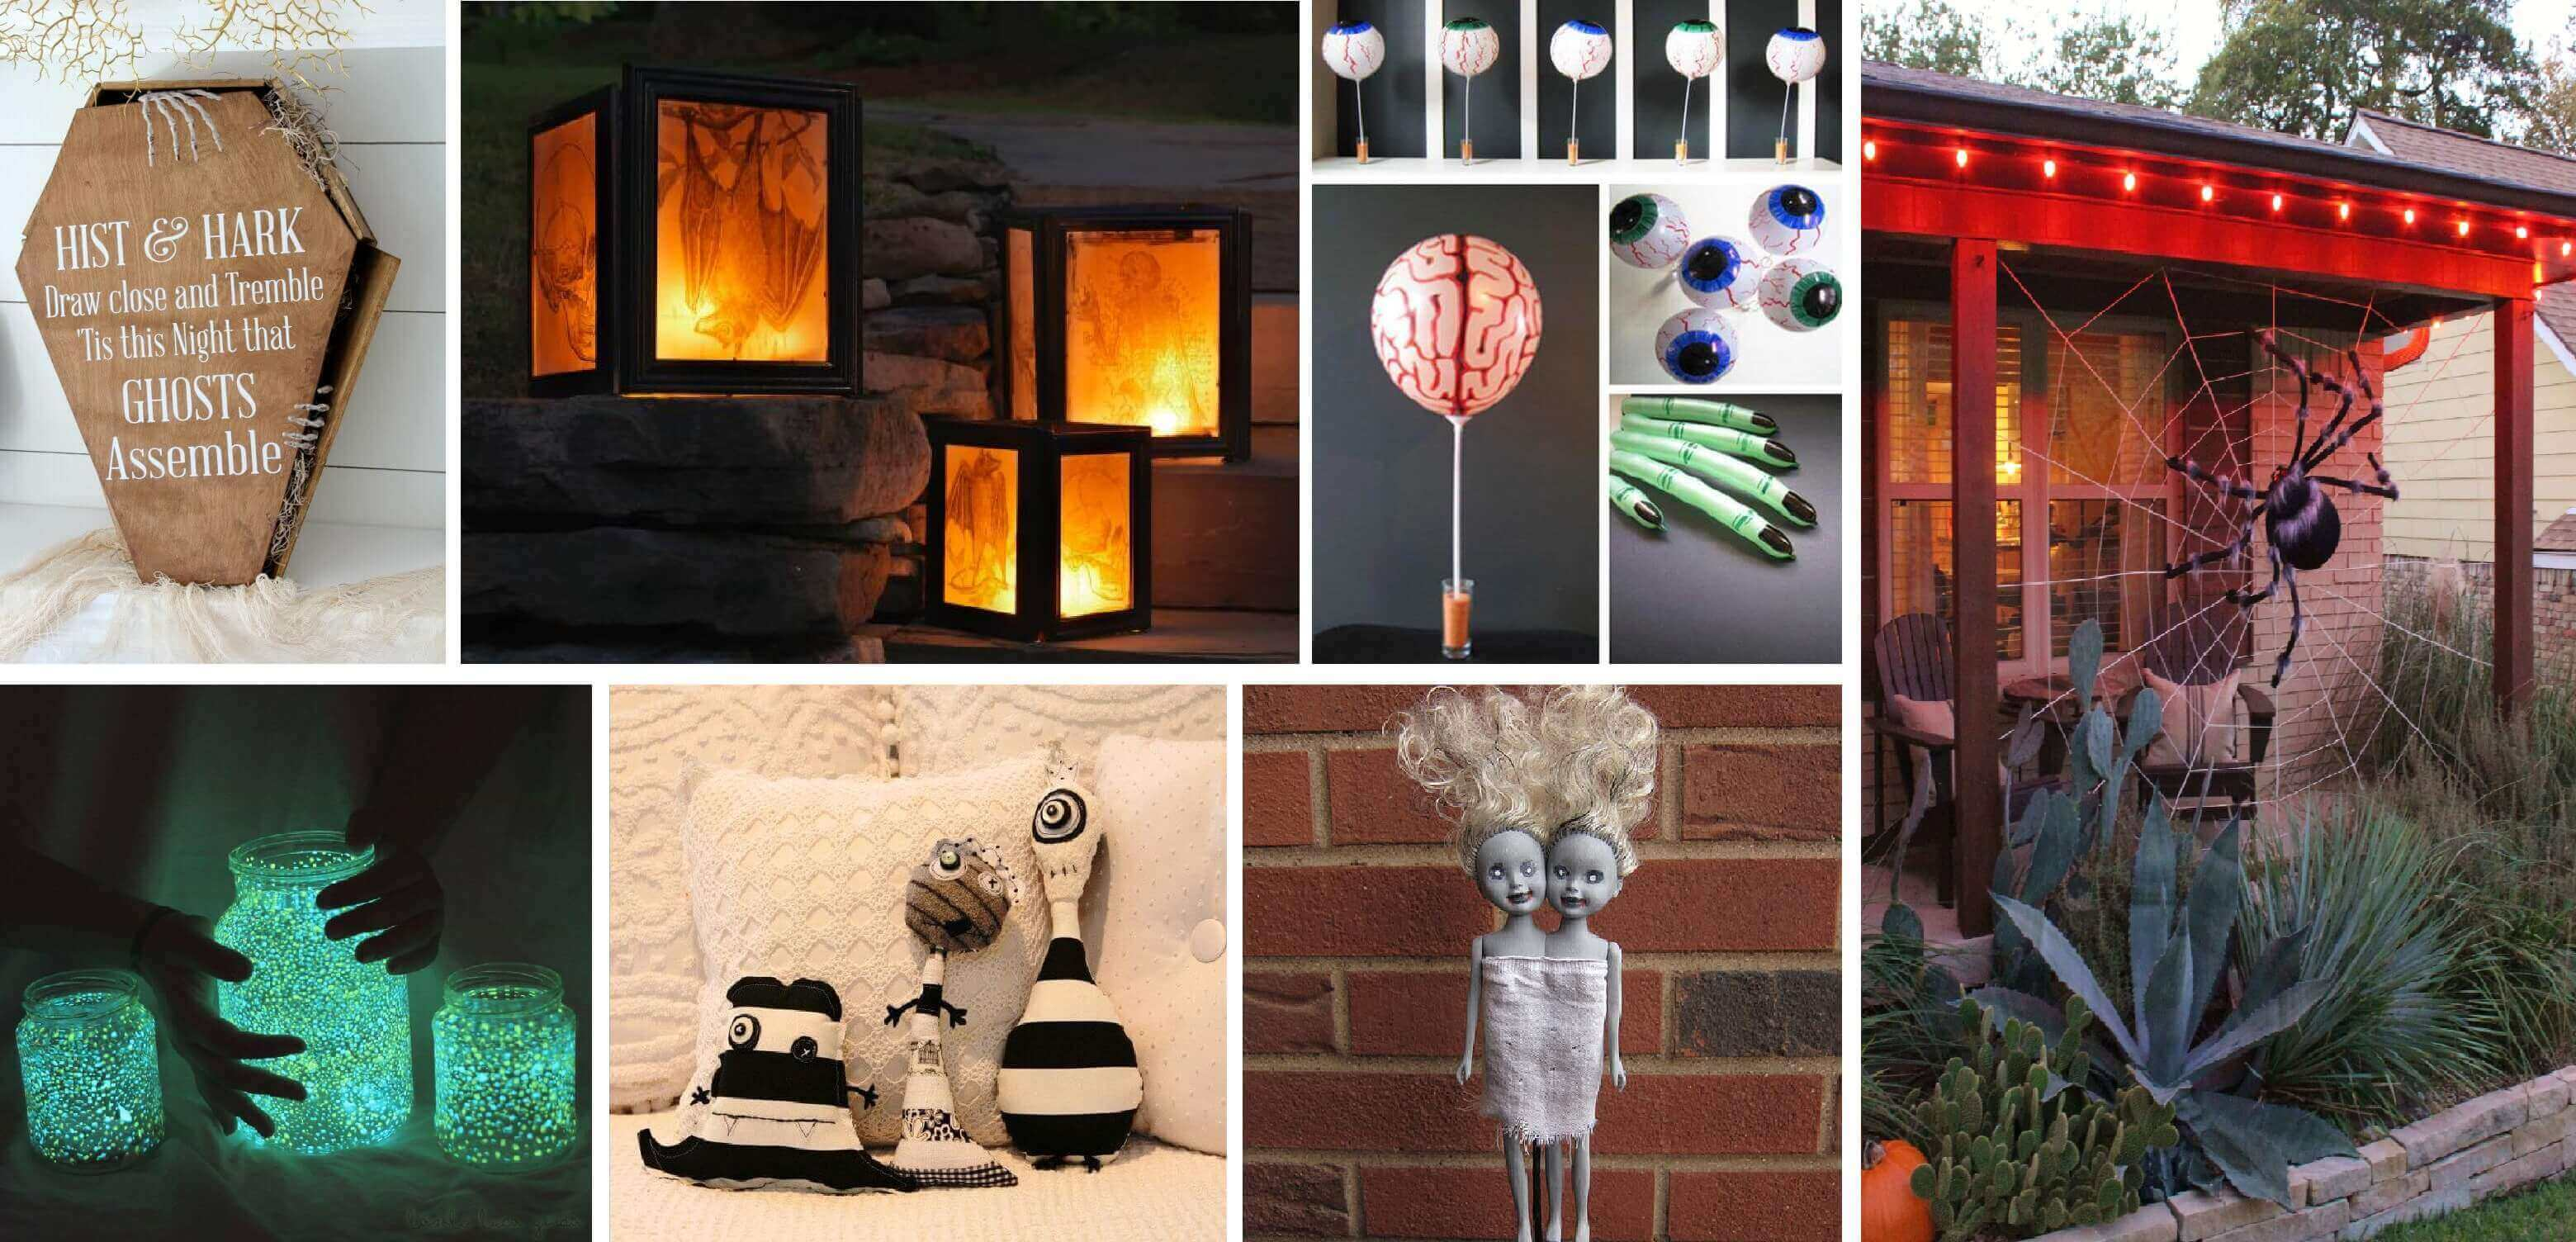 90 diy halloween decorations & ideas with tutorials